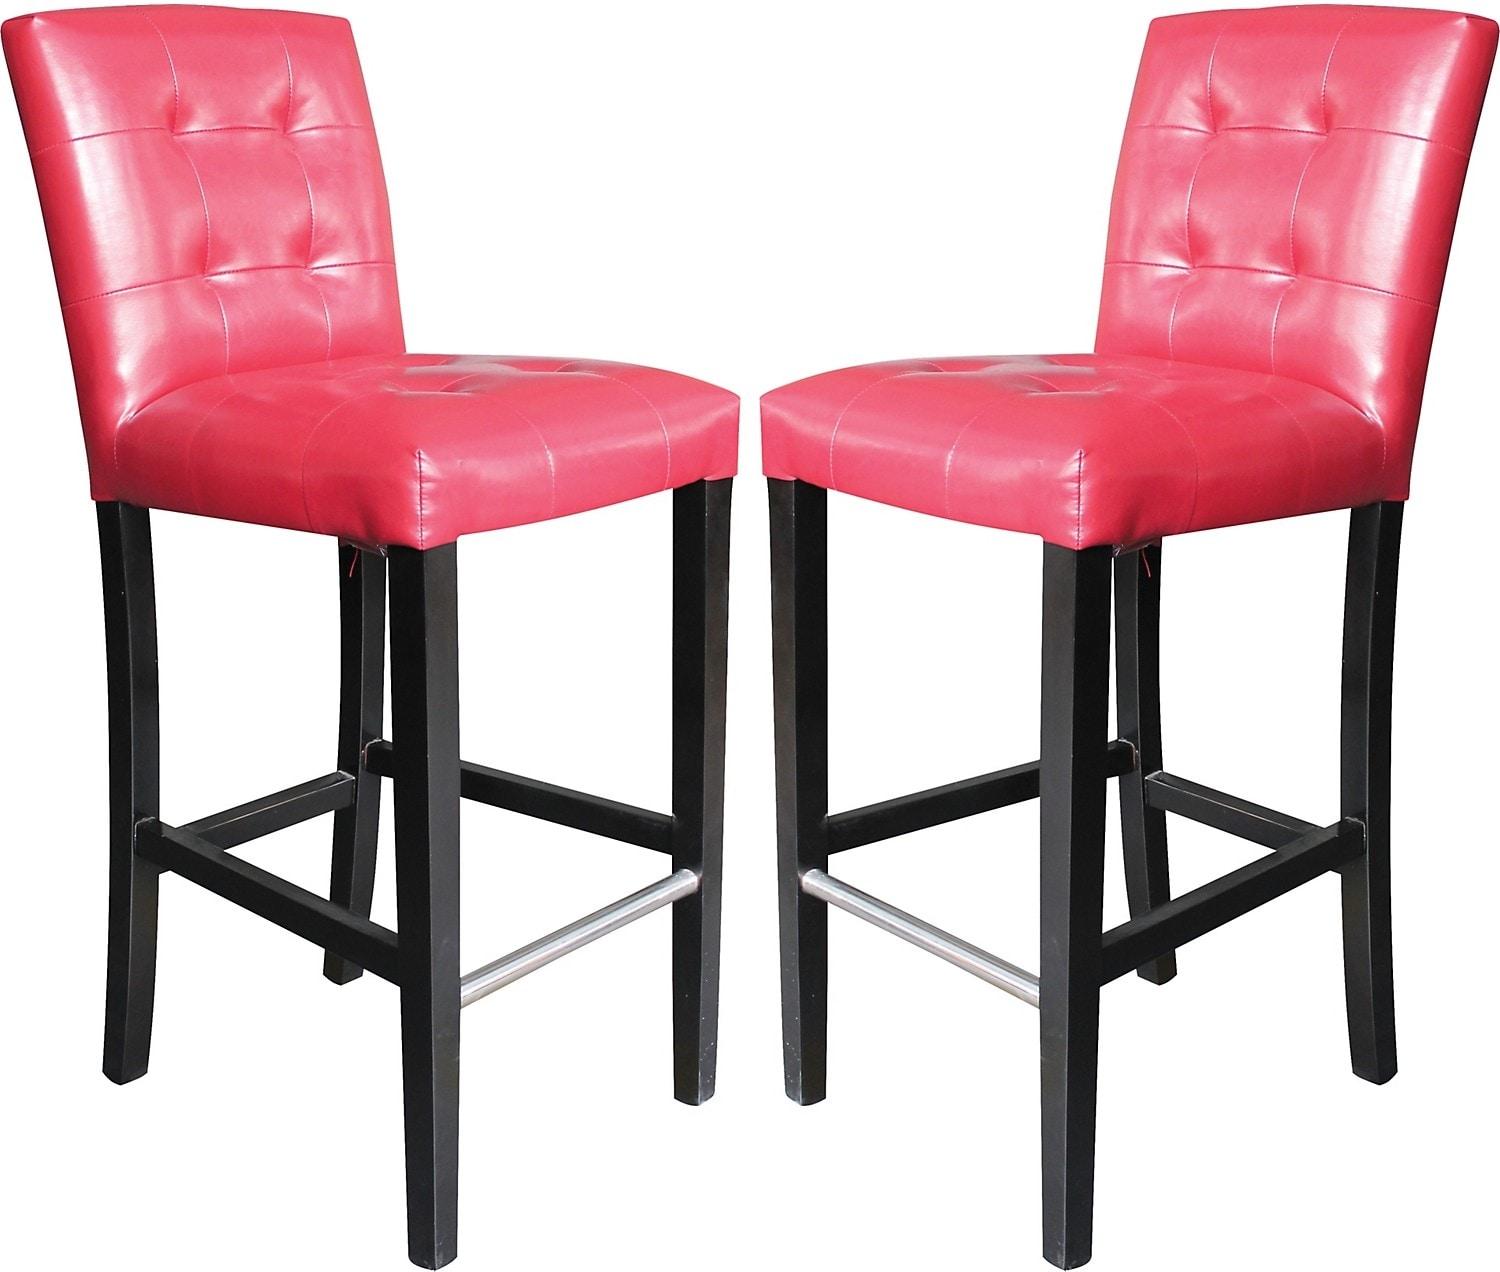 Cosmo Bar Stool Set of 2 Red The Brick